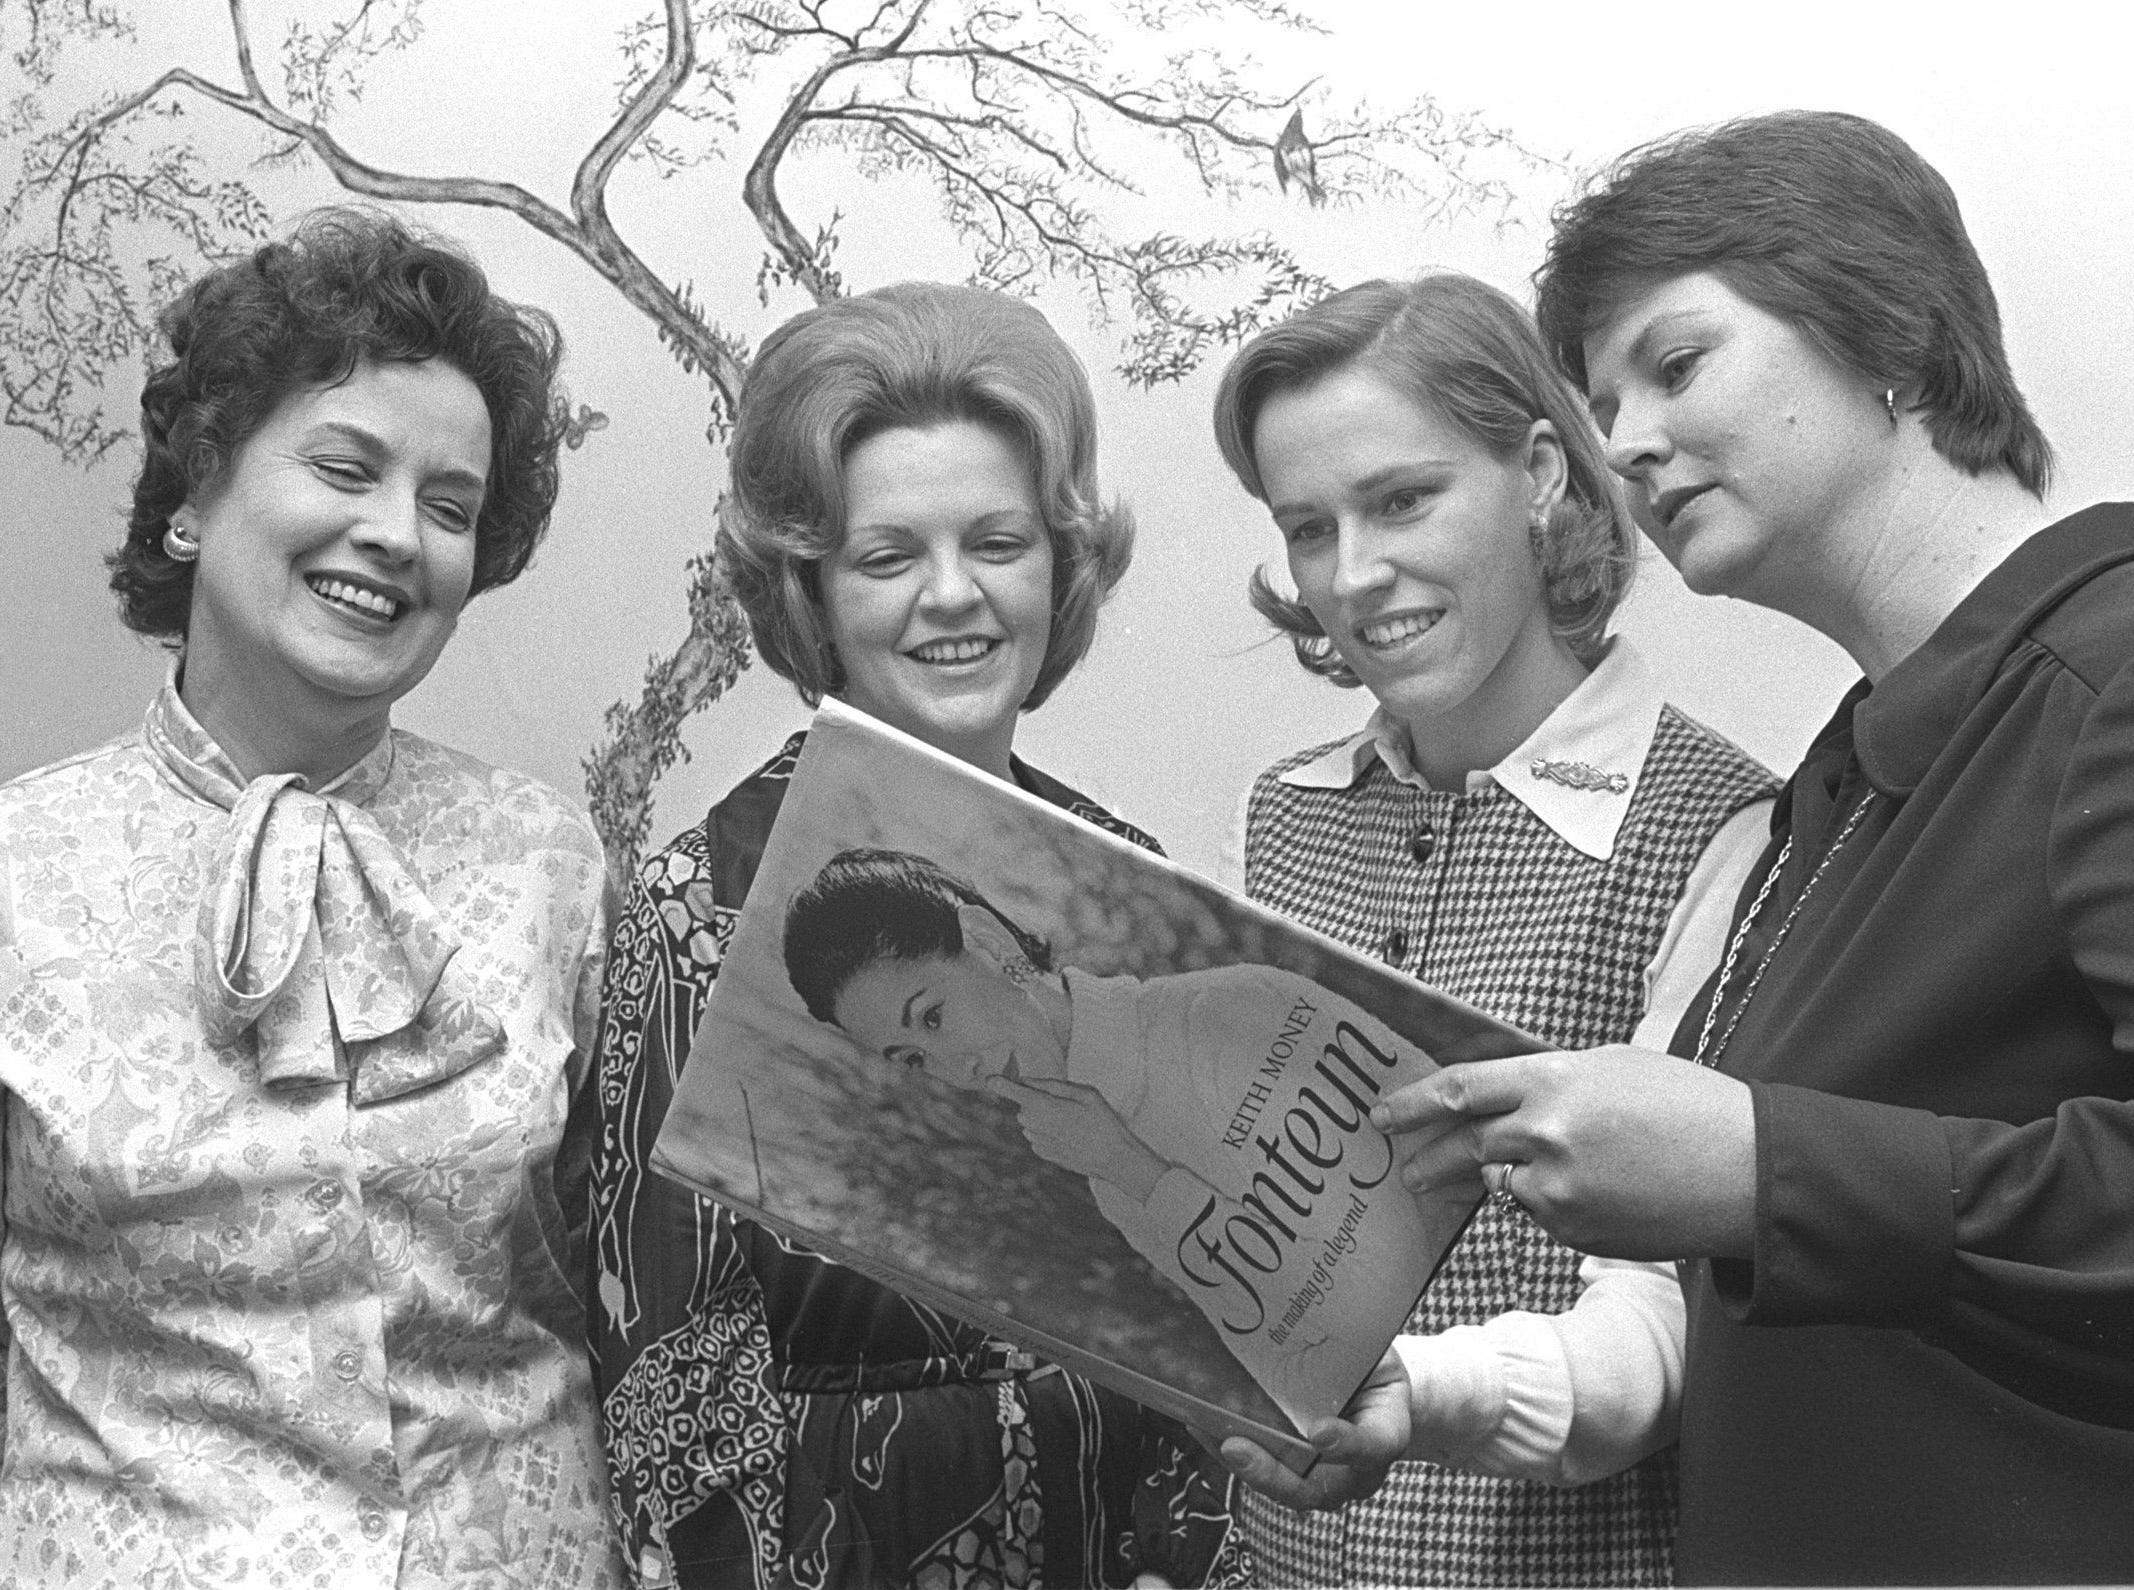 New members of the Ballet Guild were honored at a coffee in January 1975 at the home of the president, Mrs. Winfred Sharp (Left). The honorees include Mrs. John Wright (Second Left) and Mrs. William Parr Jr. (Second Right). Mrs. William F. (Right) Dietrich is president-elect.